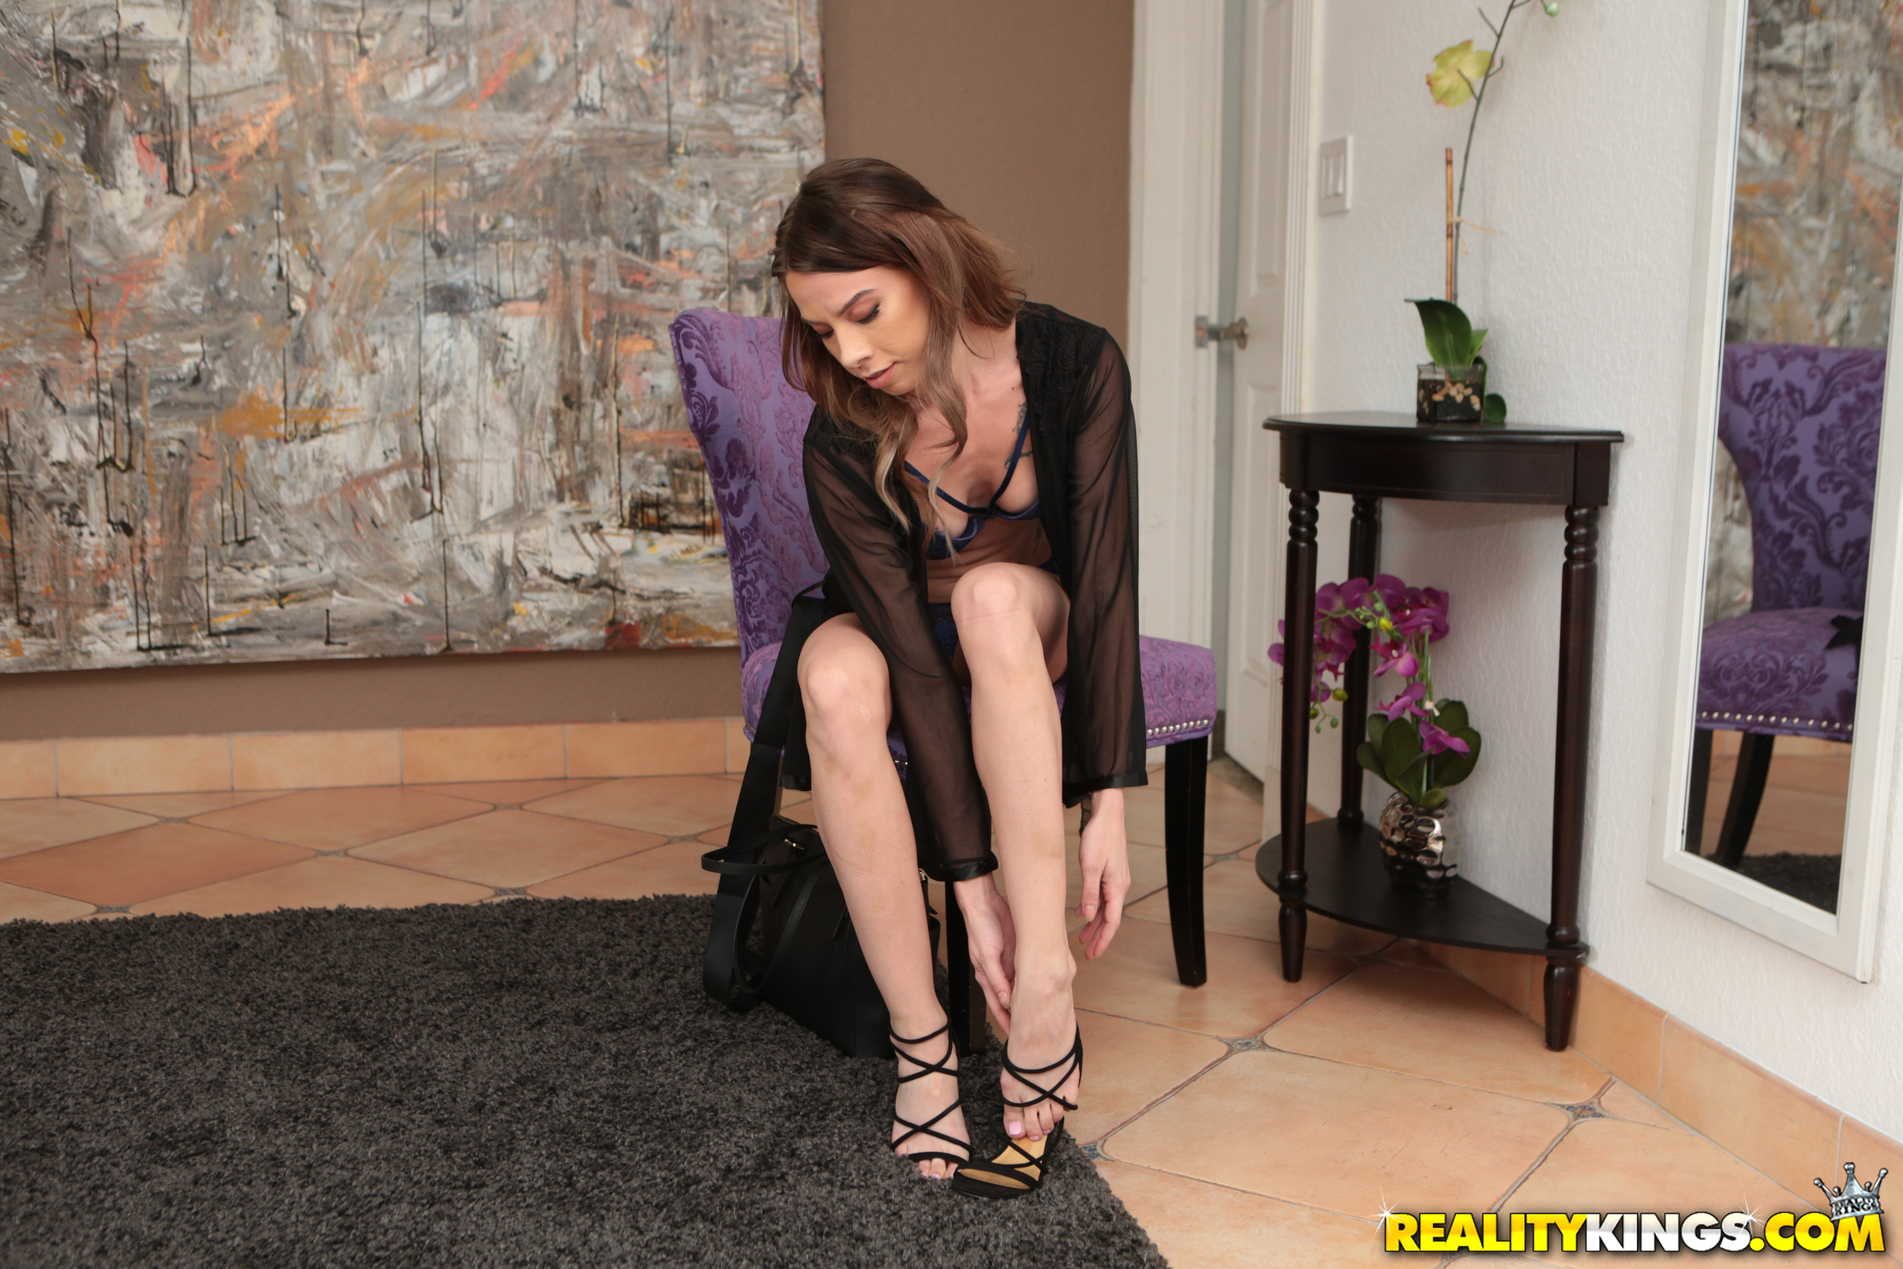 Reality Kings 'Just Like My Big Sis' starring Lexi Brooke (Photo 65)